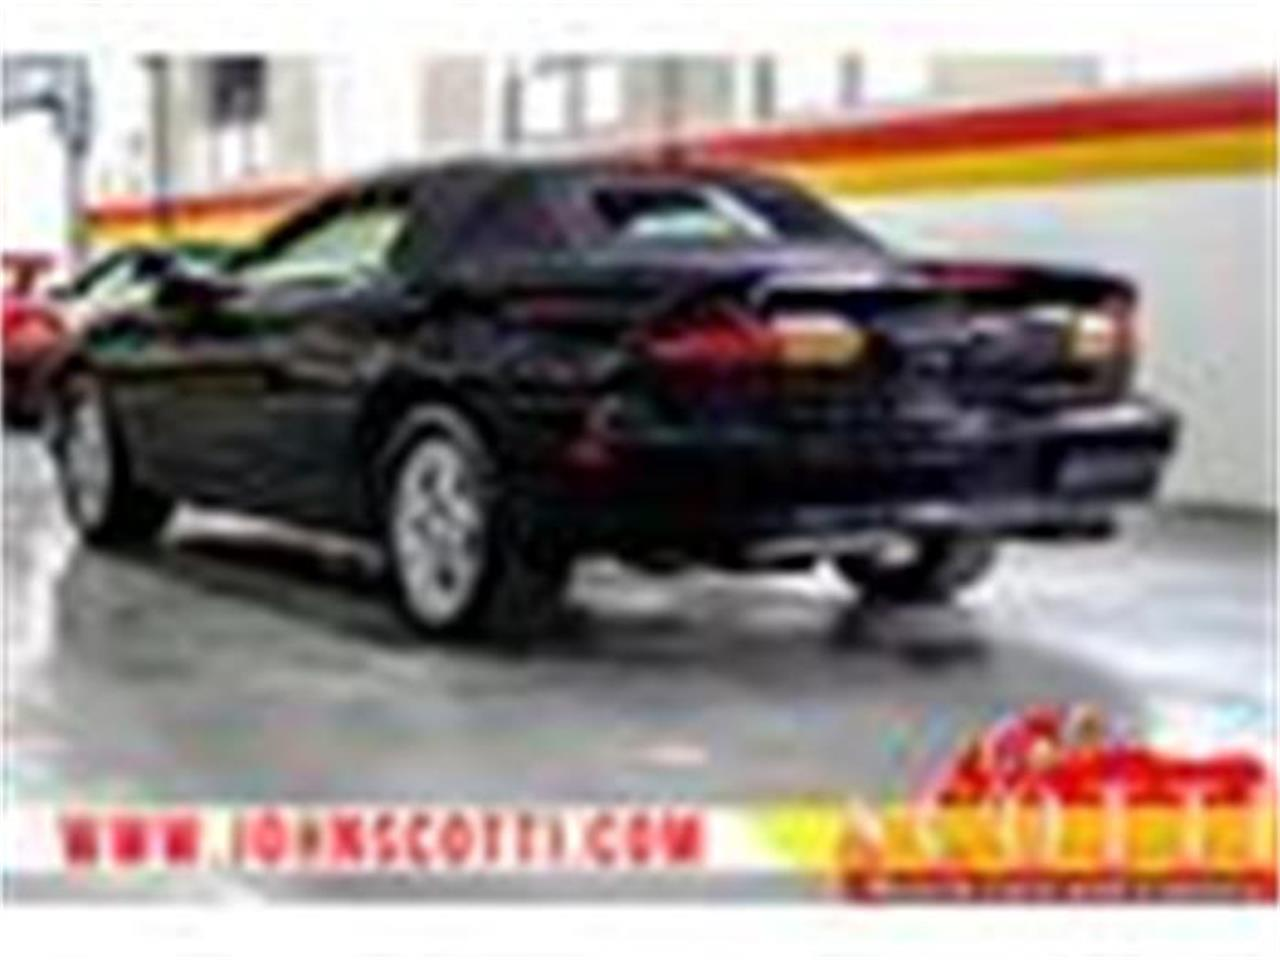 Large Picture of 2002 Chevrolet Camaro located in Montreal Quebec - $38,995.00 Offered by John Scotti Classic Cars - G9NO